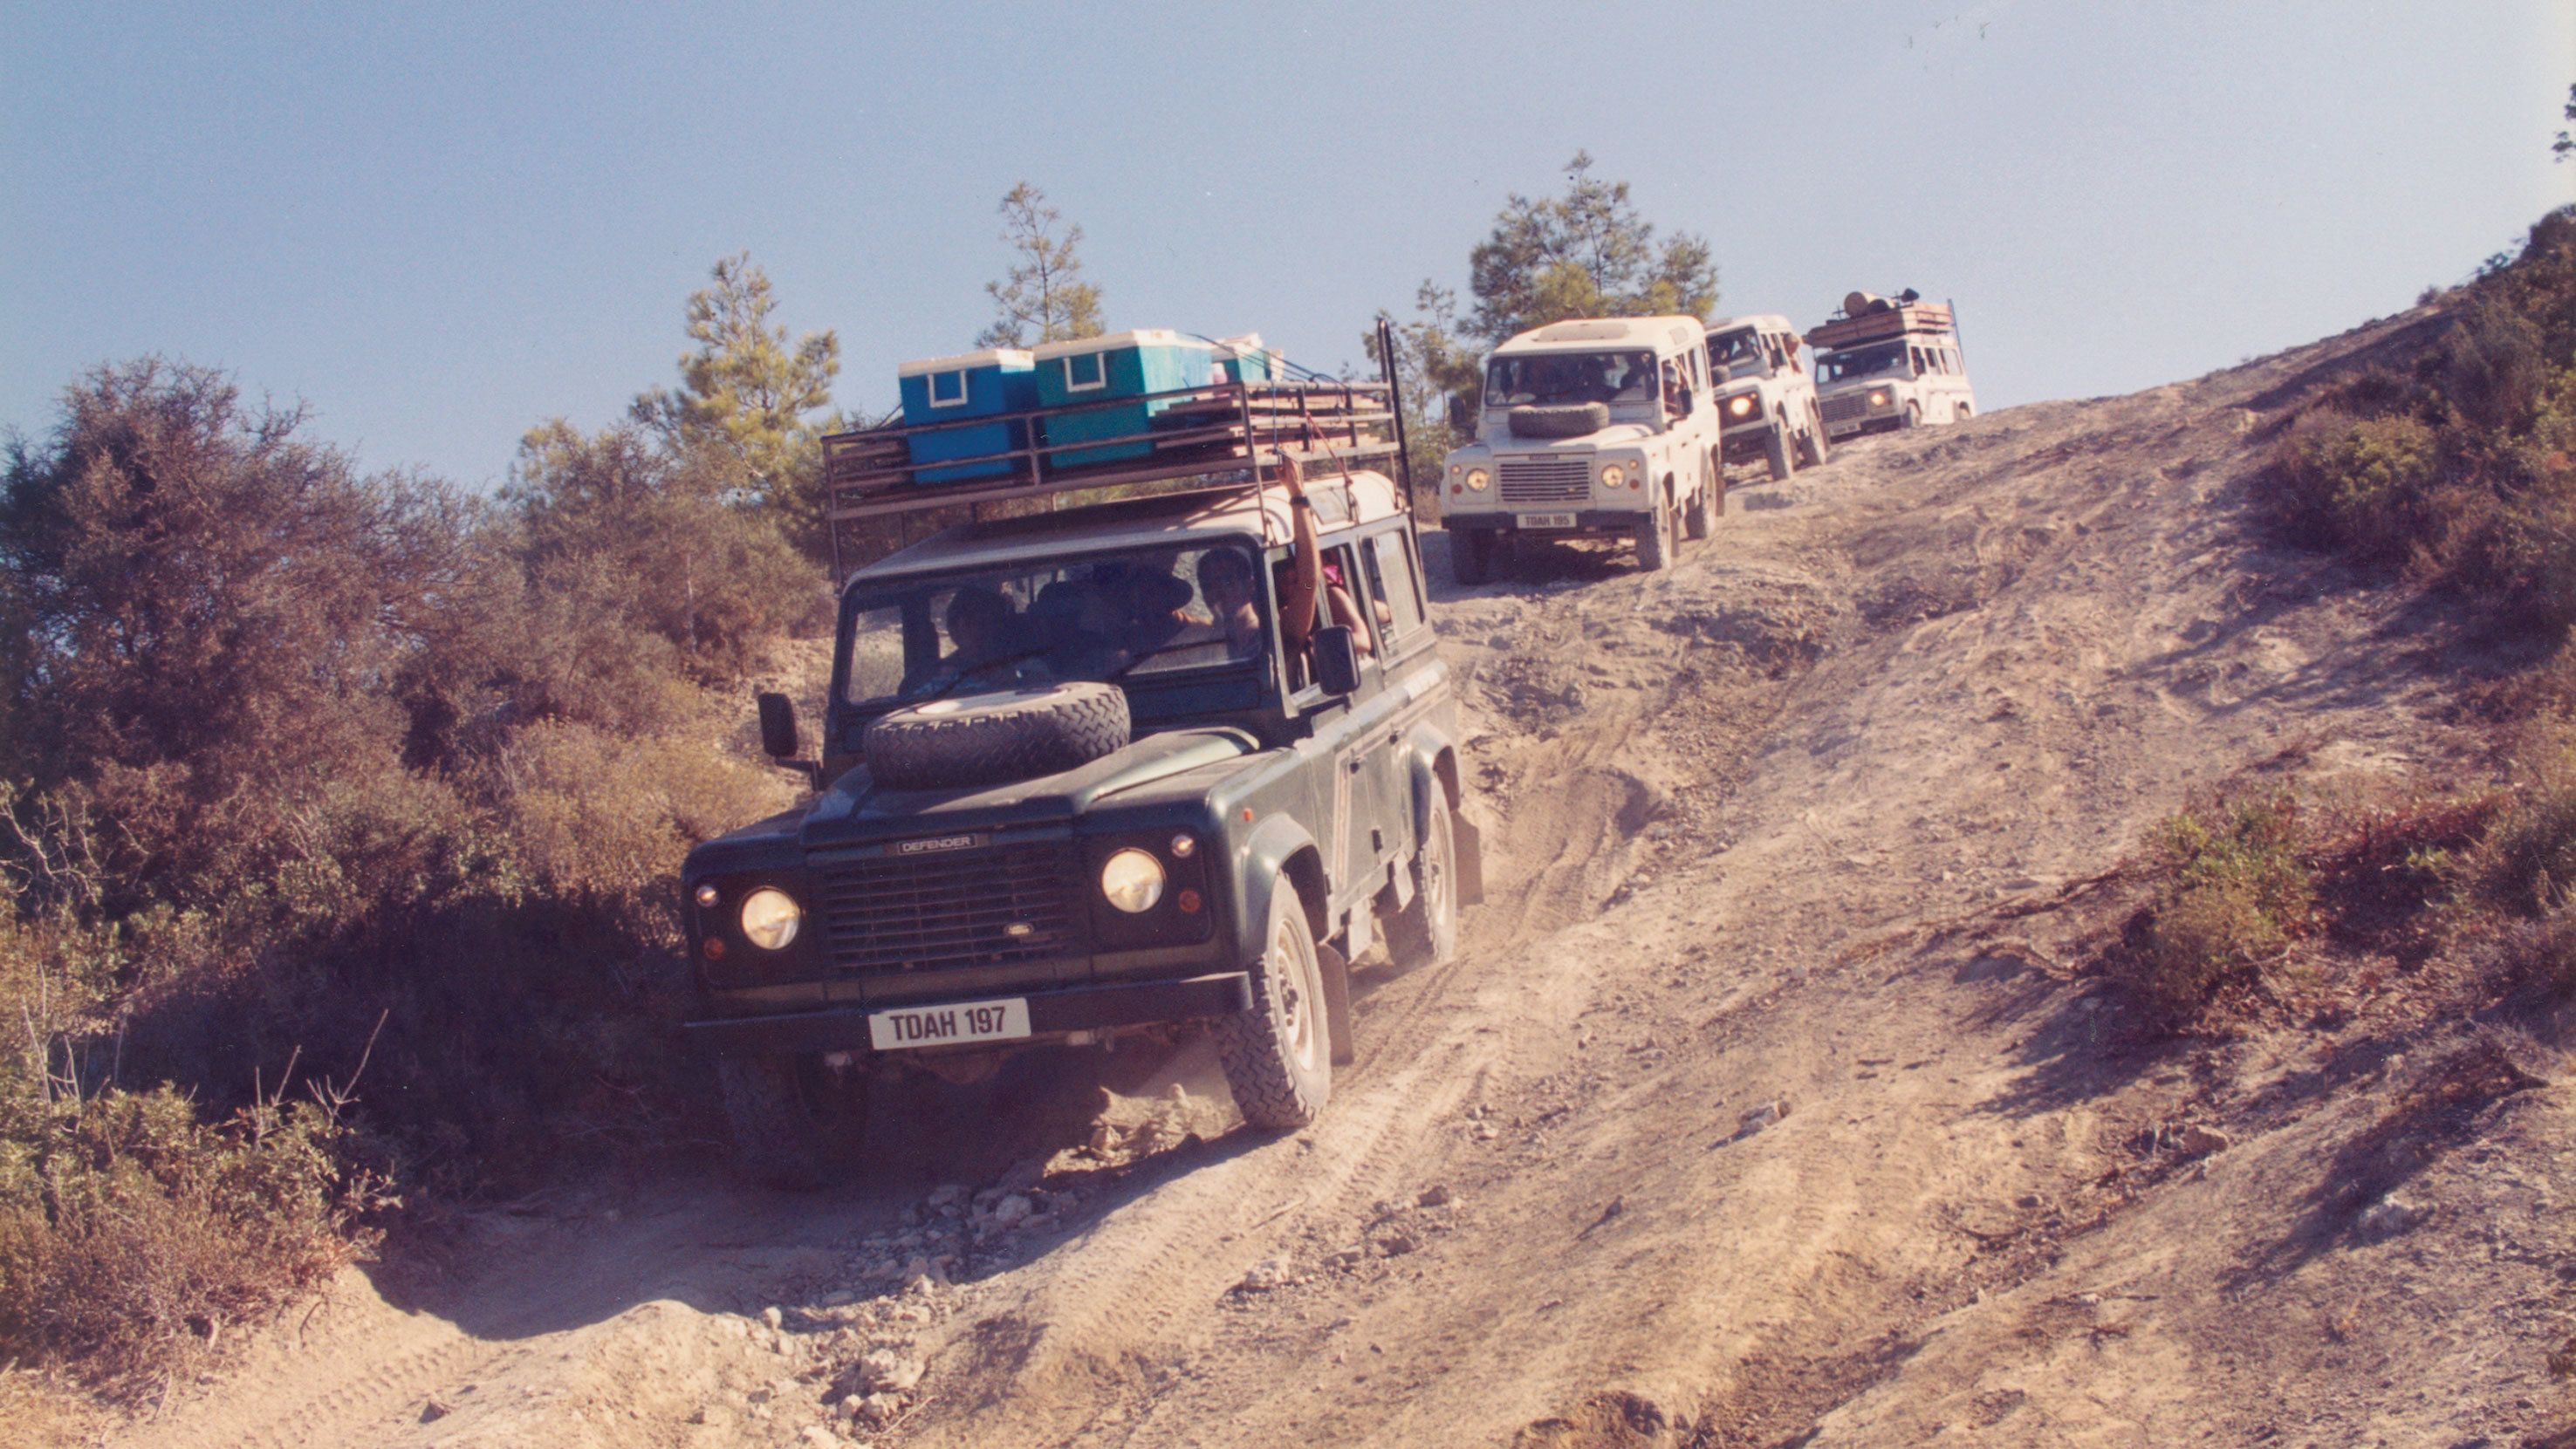 Jeeps carrying gear down steep dusty road in Cyprus